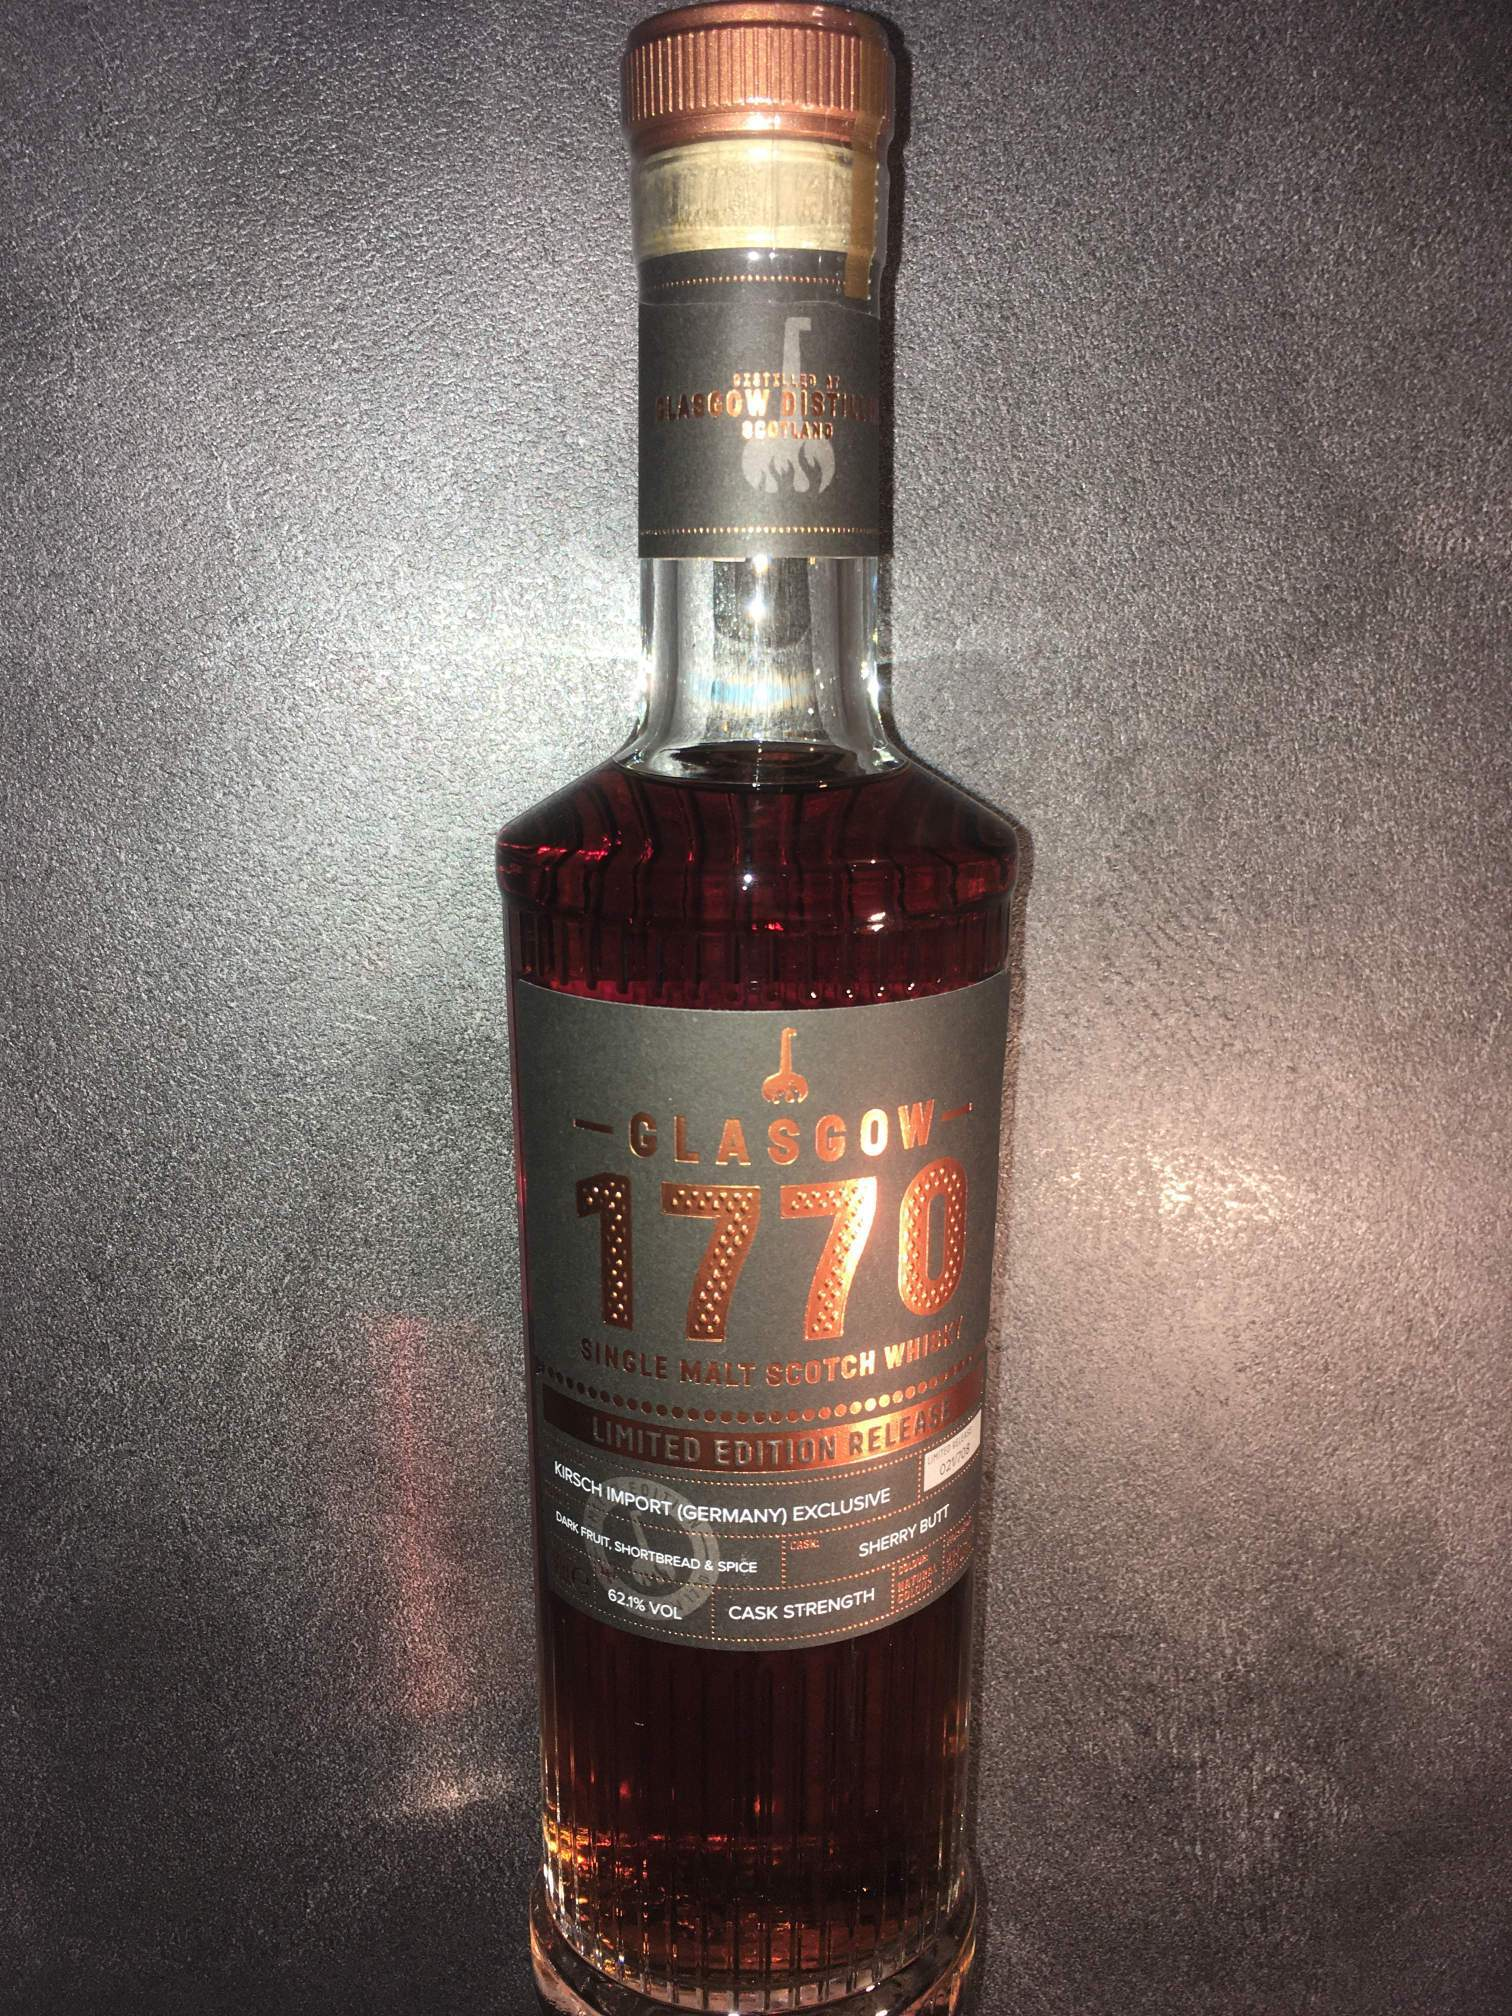 Glasgow 1770 Limited Edition Release - Single Cask - Cask Strength